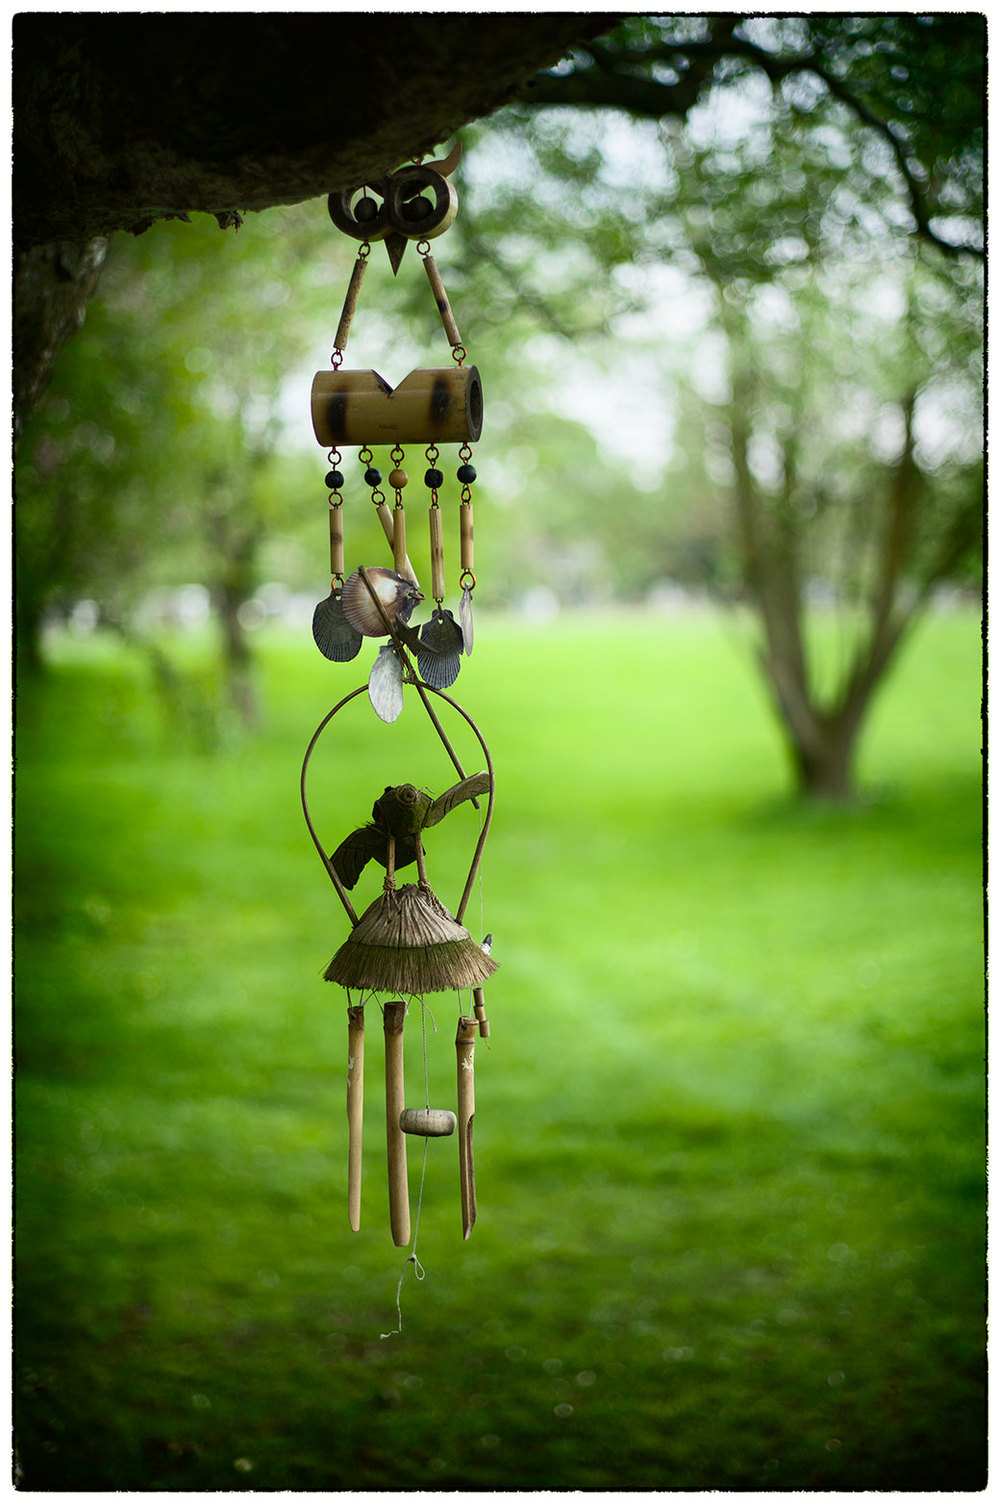 Wind chimes.  There's something really calming about the stillness.  Early morning relaxation.